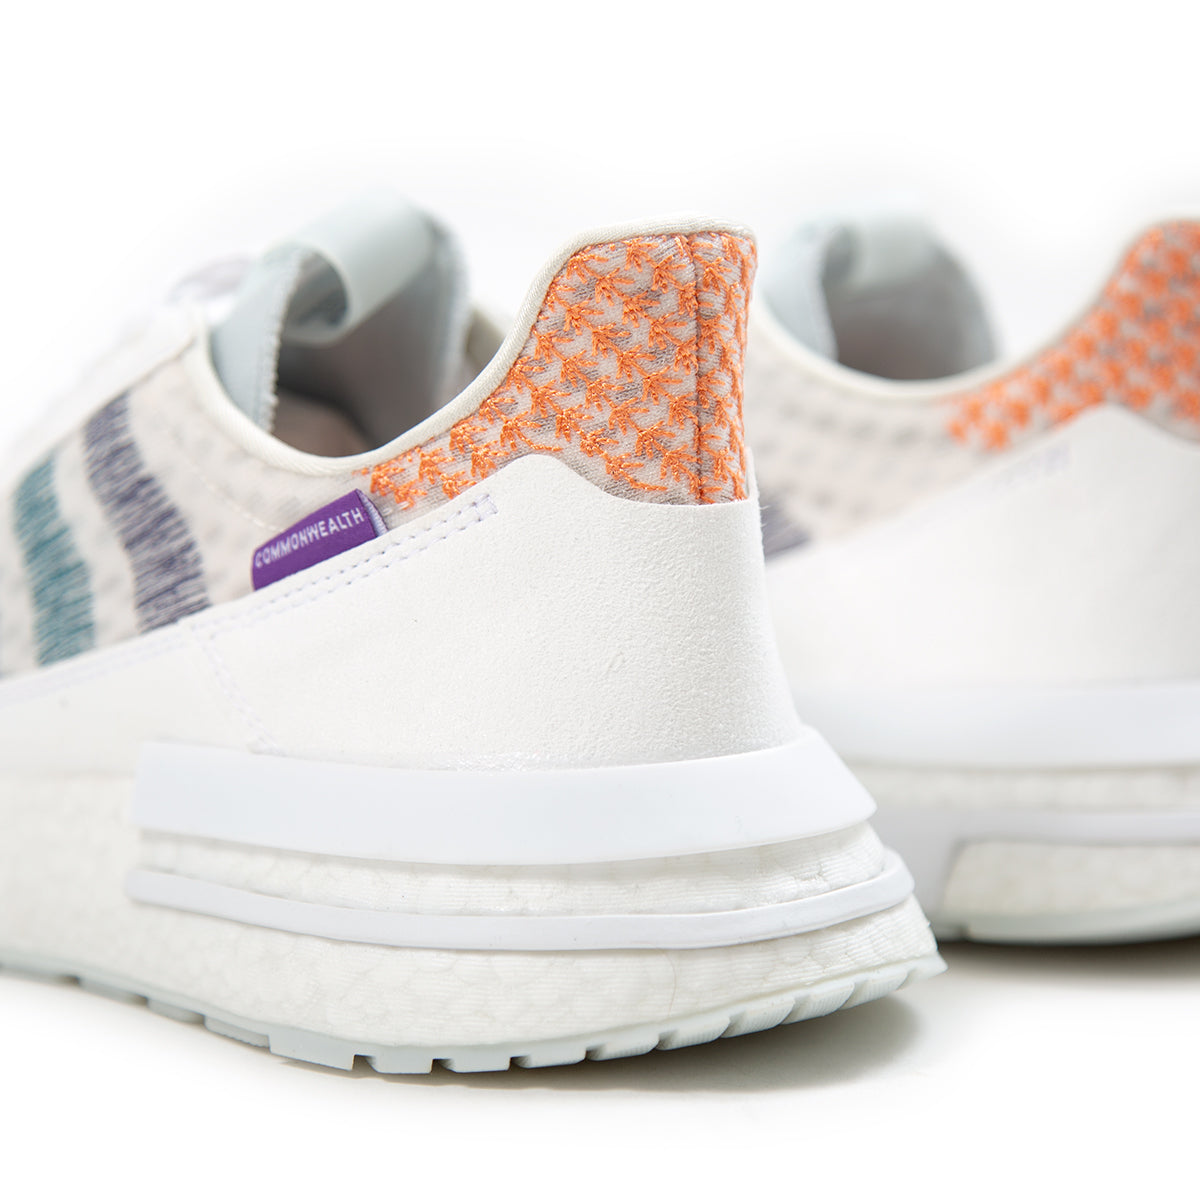 bf725643ca7a2 adidas Consortium x Commonwealth ZX 500 RM (Orchard Tint) DB3510